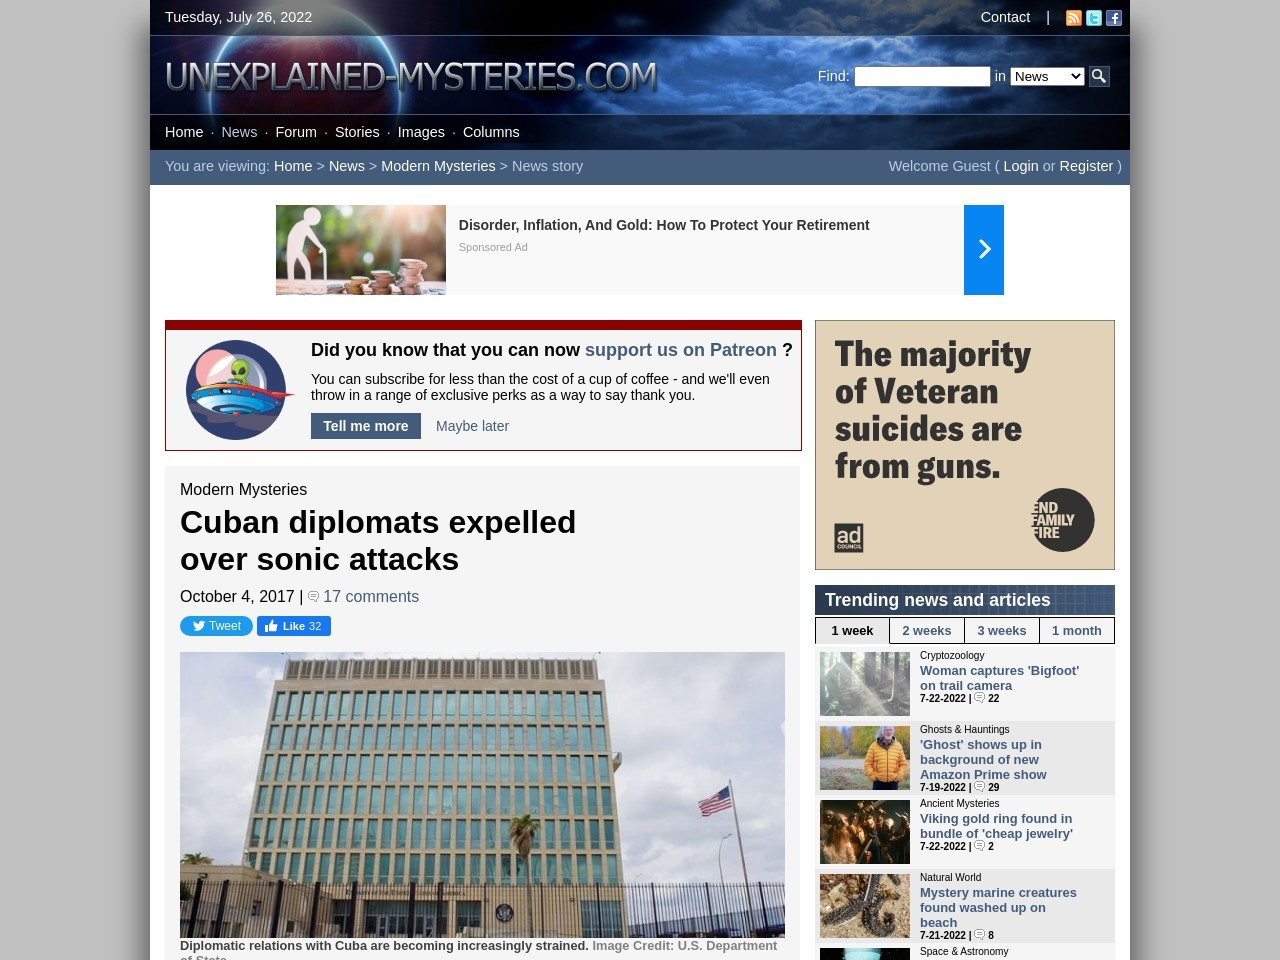 Cuban diplomats expelled over sonic attacks